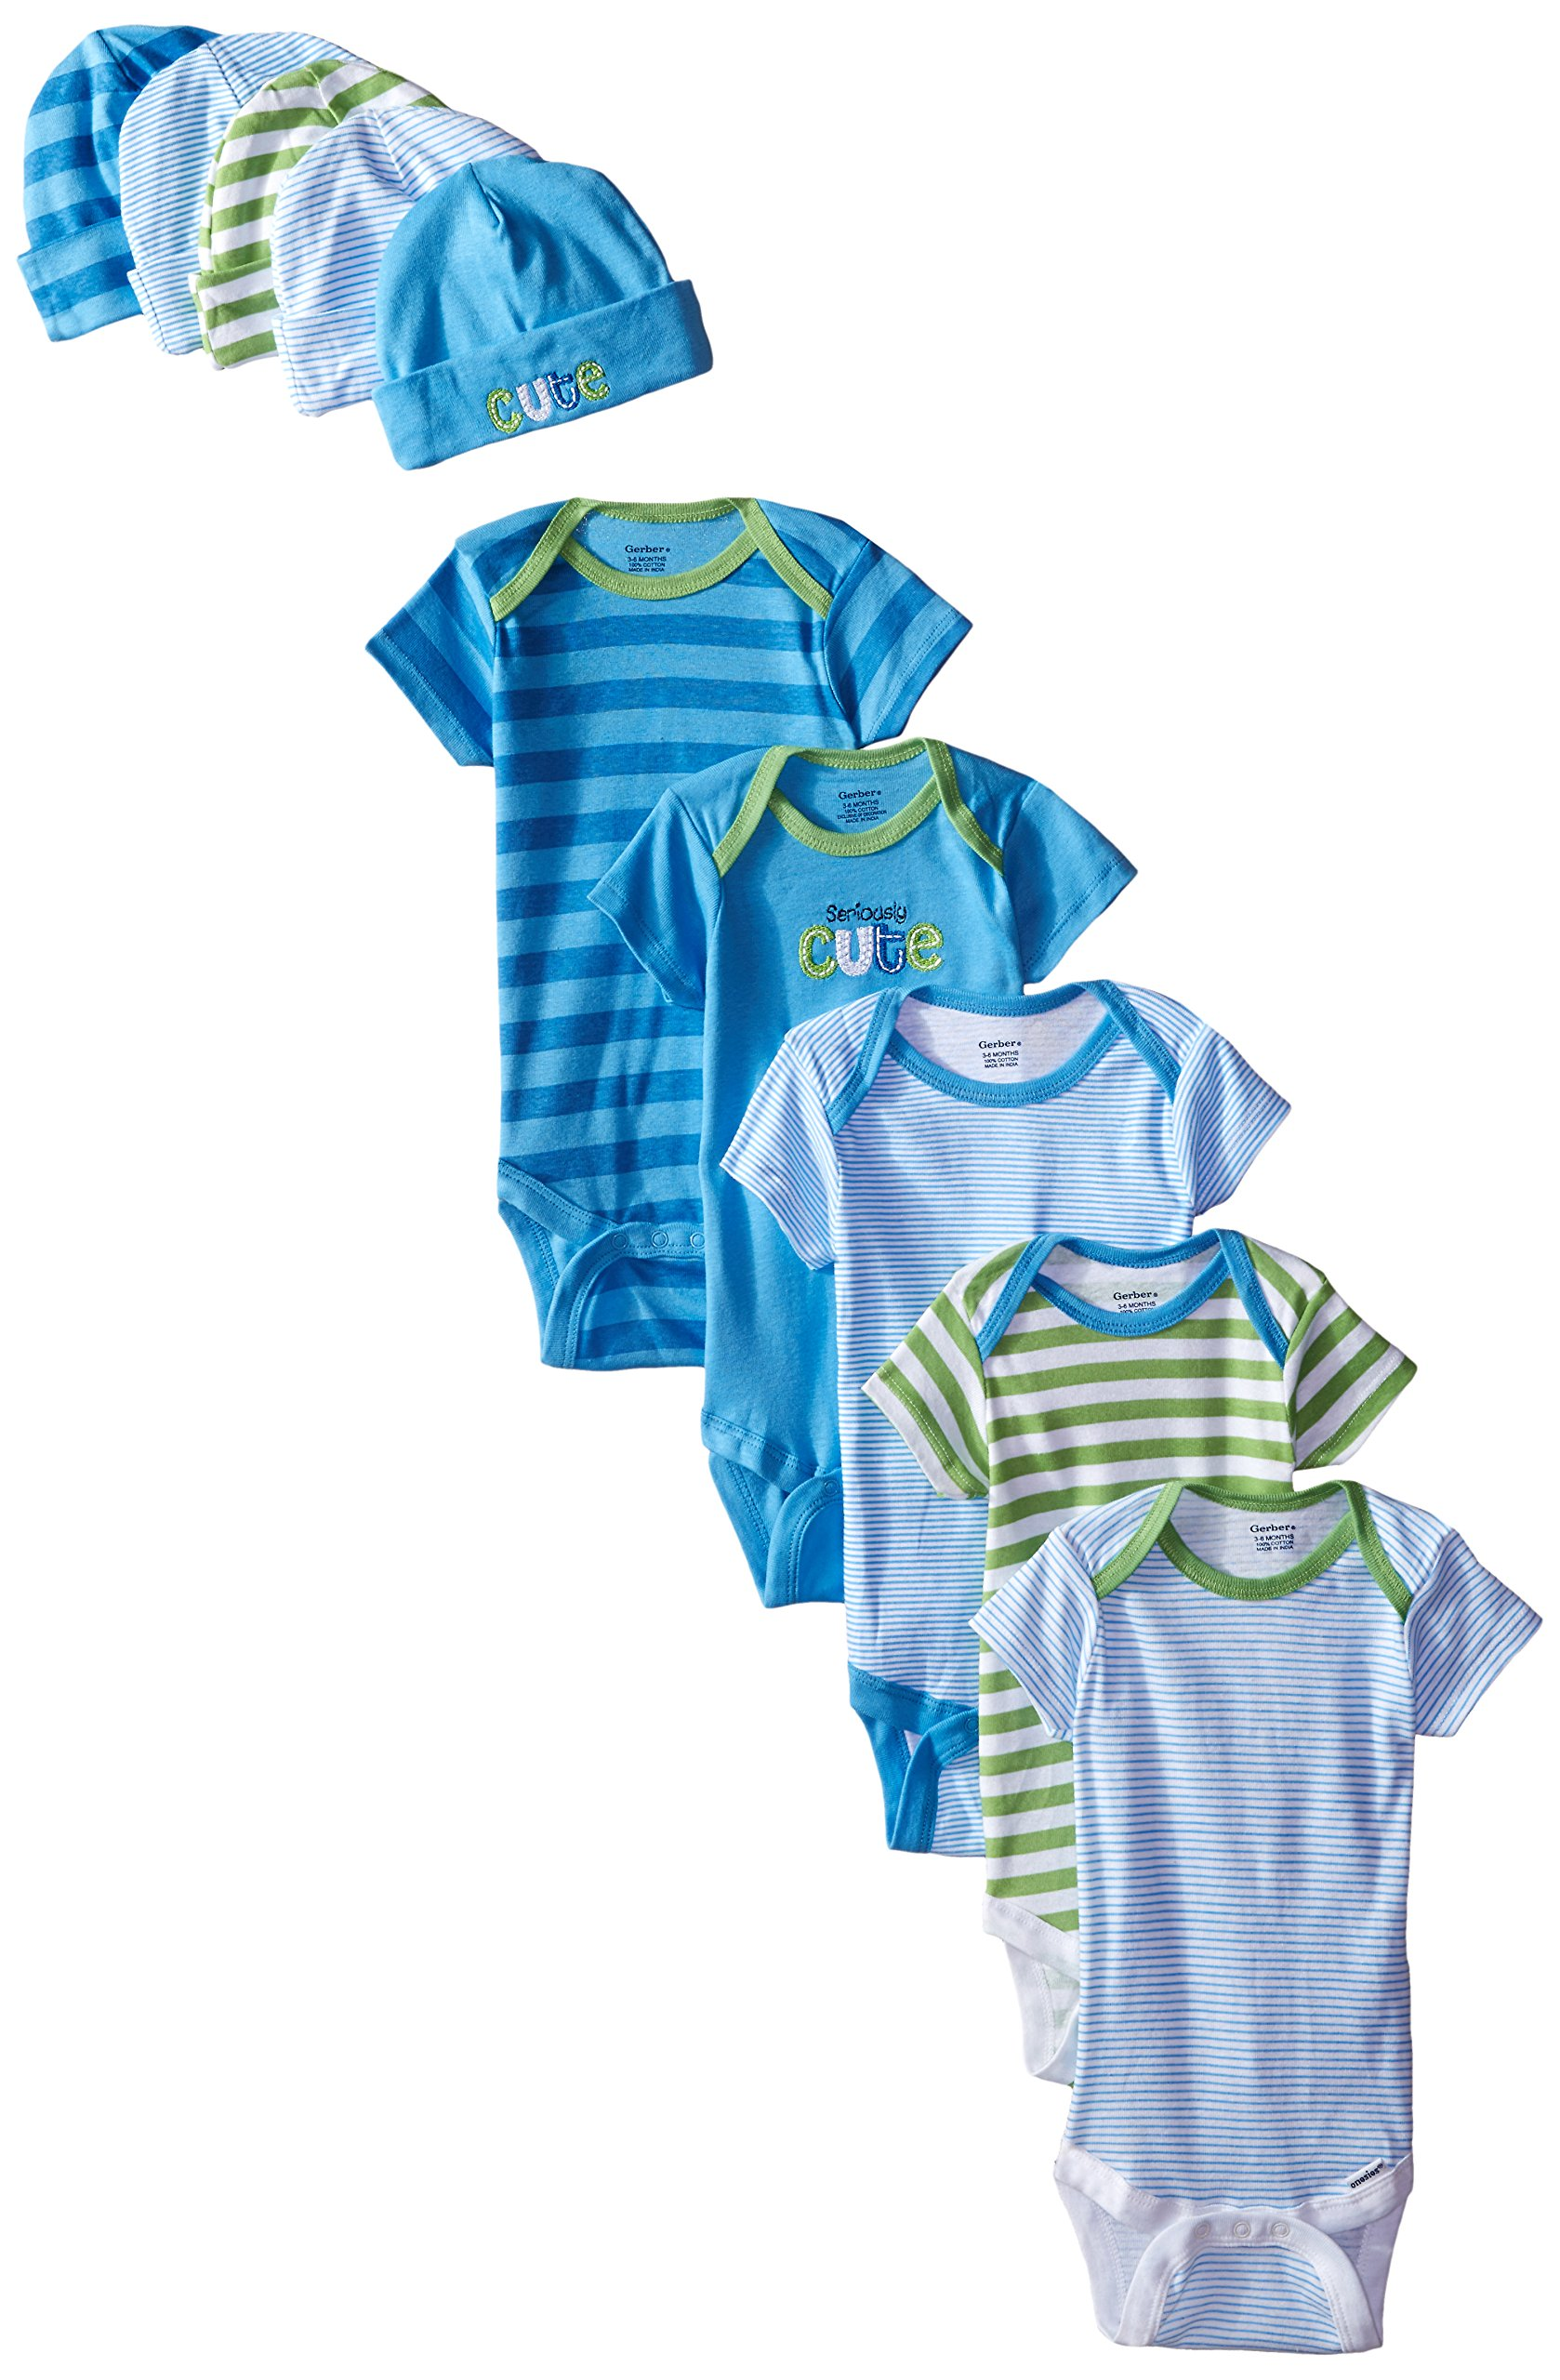 Gerber Baby-Boys Newborn Cars Onesies and Cap Bundle, Cars, 0-6 Months (Pack of 5)